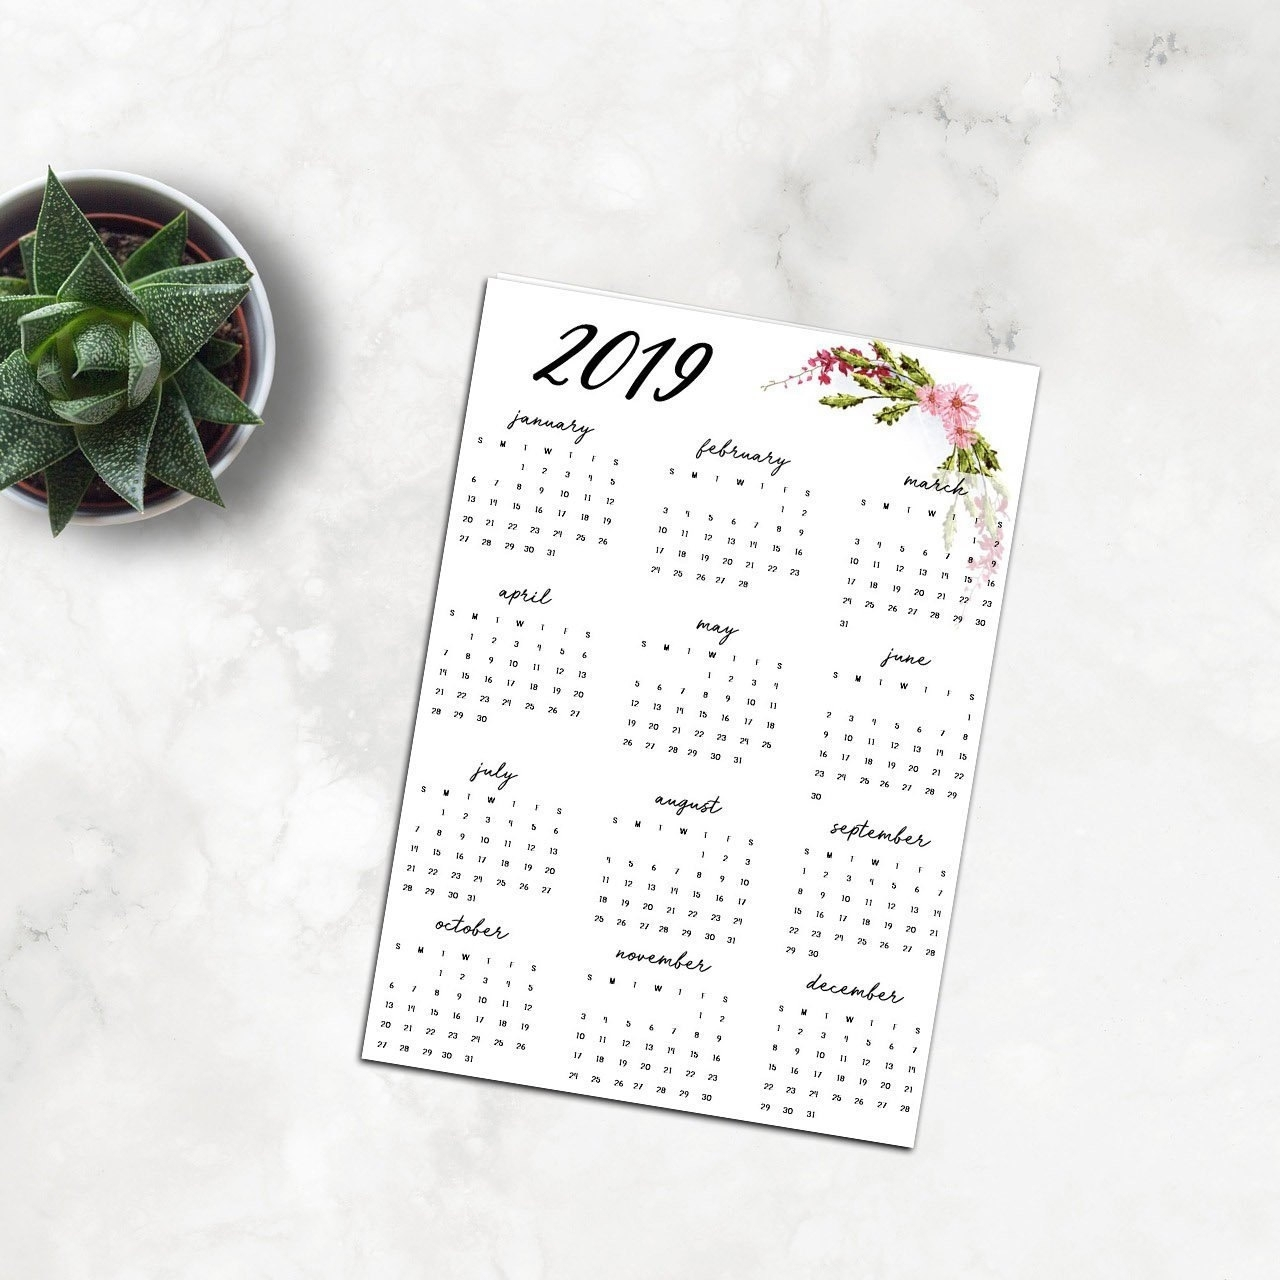 2019 Yearly Calendar 2019 Full Page Calendar Printable 2019 | Etsy with regard to 8 X 10 Print Calendar